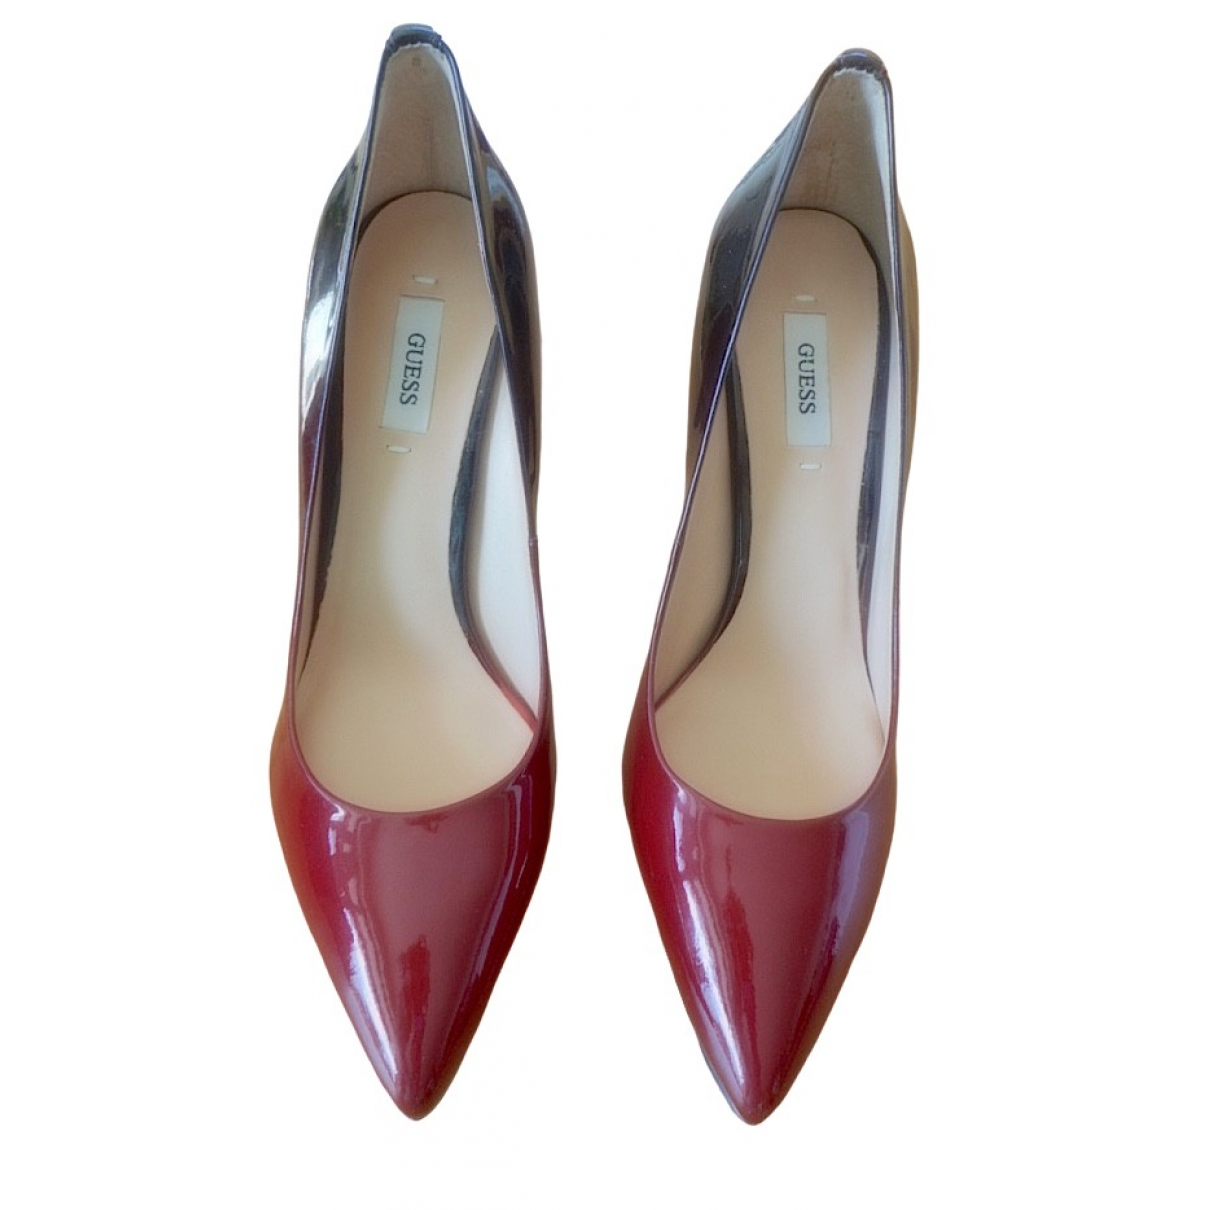 Guess \N Burgundy Patent leather Heels for Women 37 EU